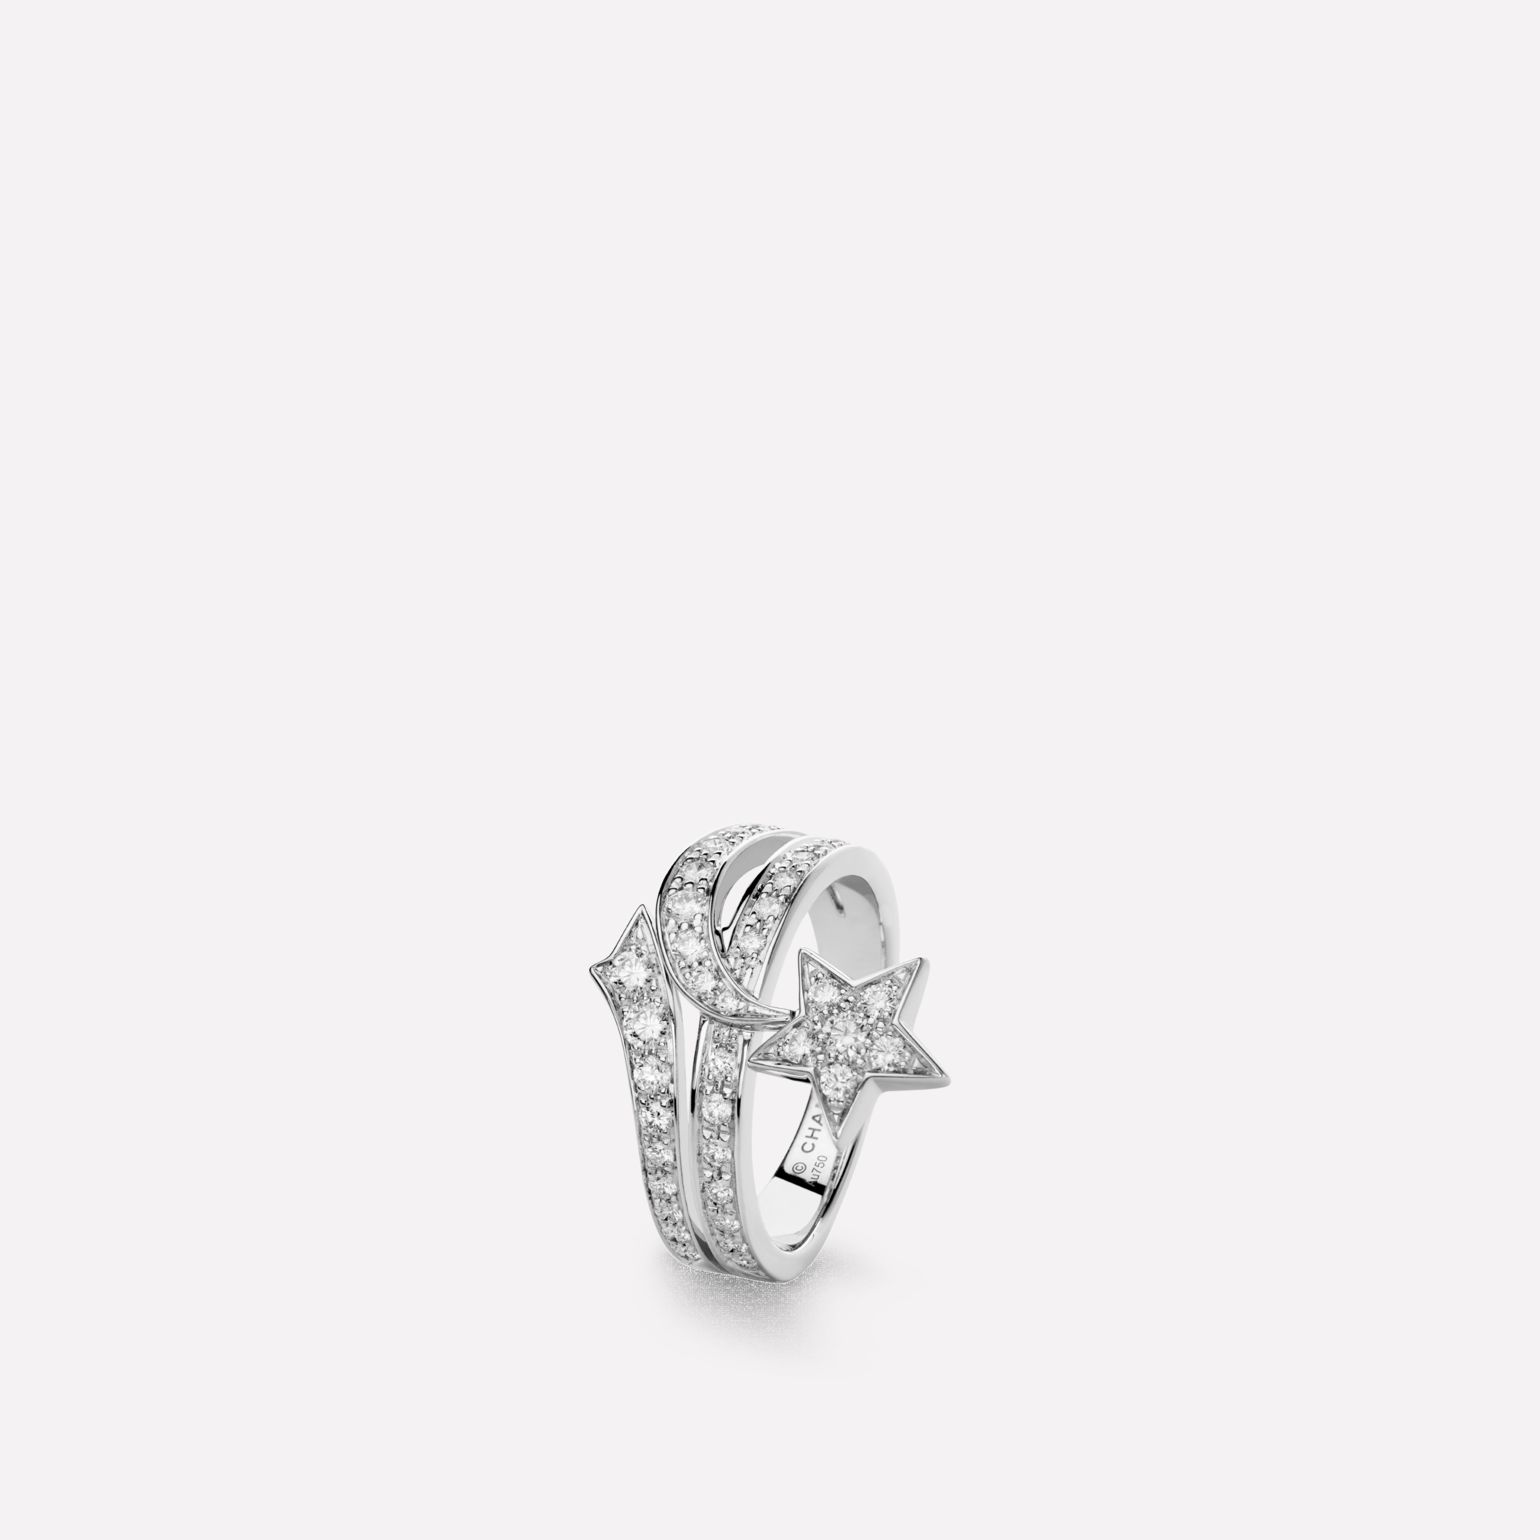 Bague Comète Motif étoile filante charms en or blanc 18 carats et diamants